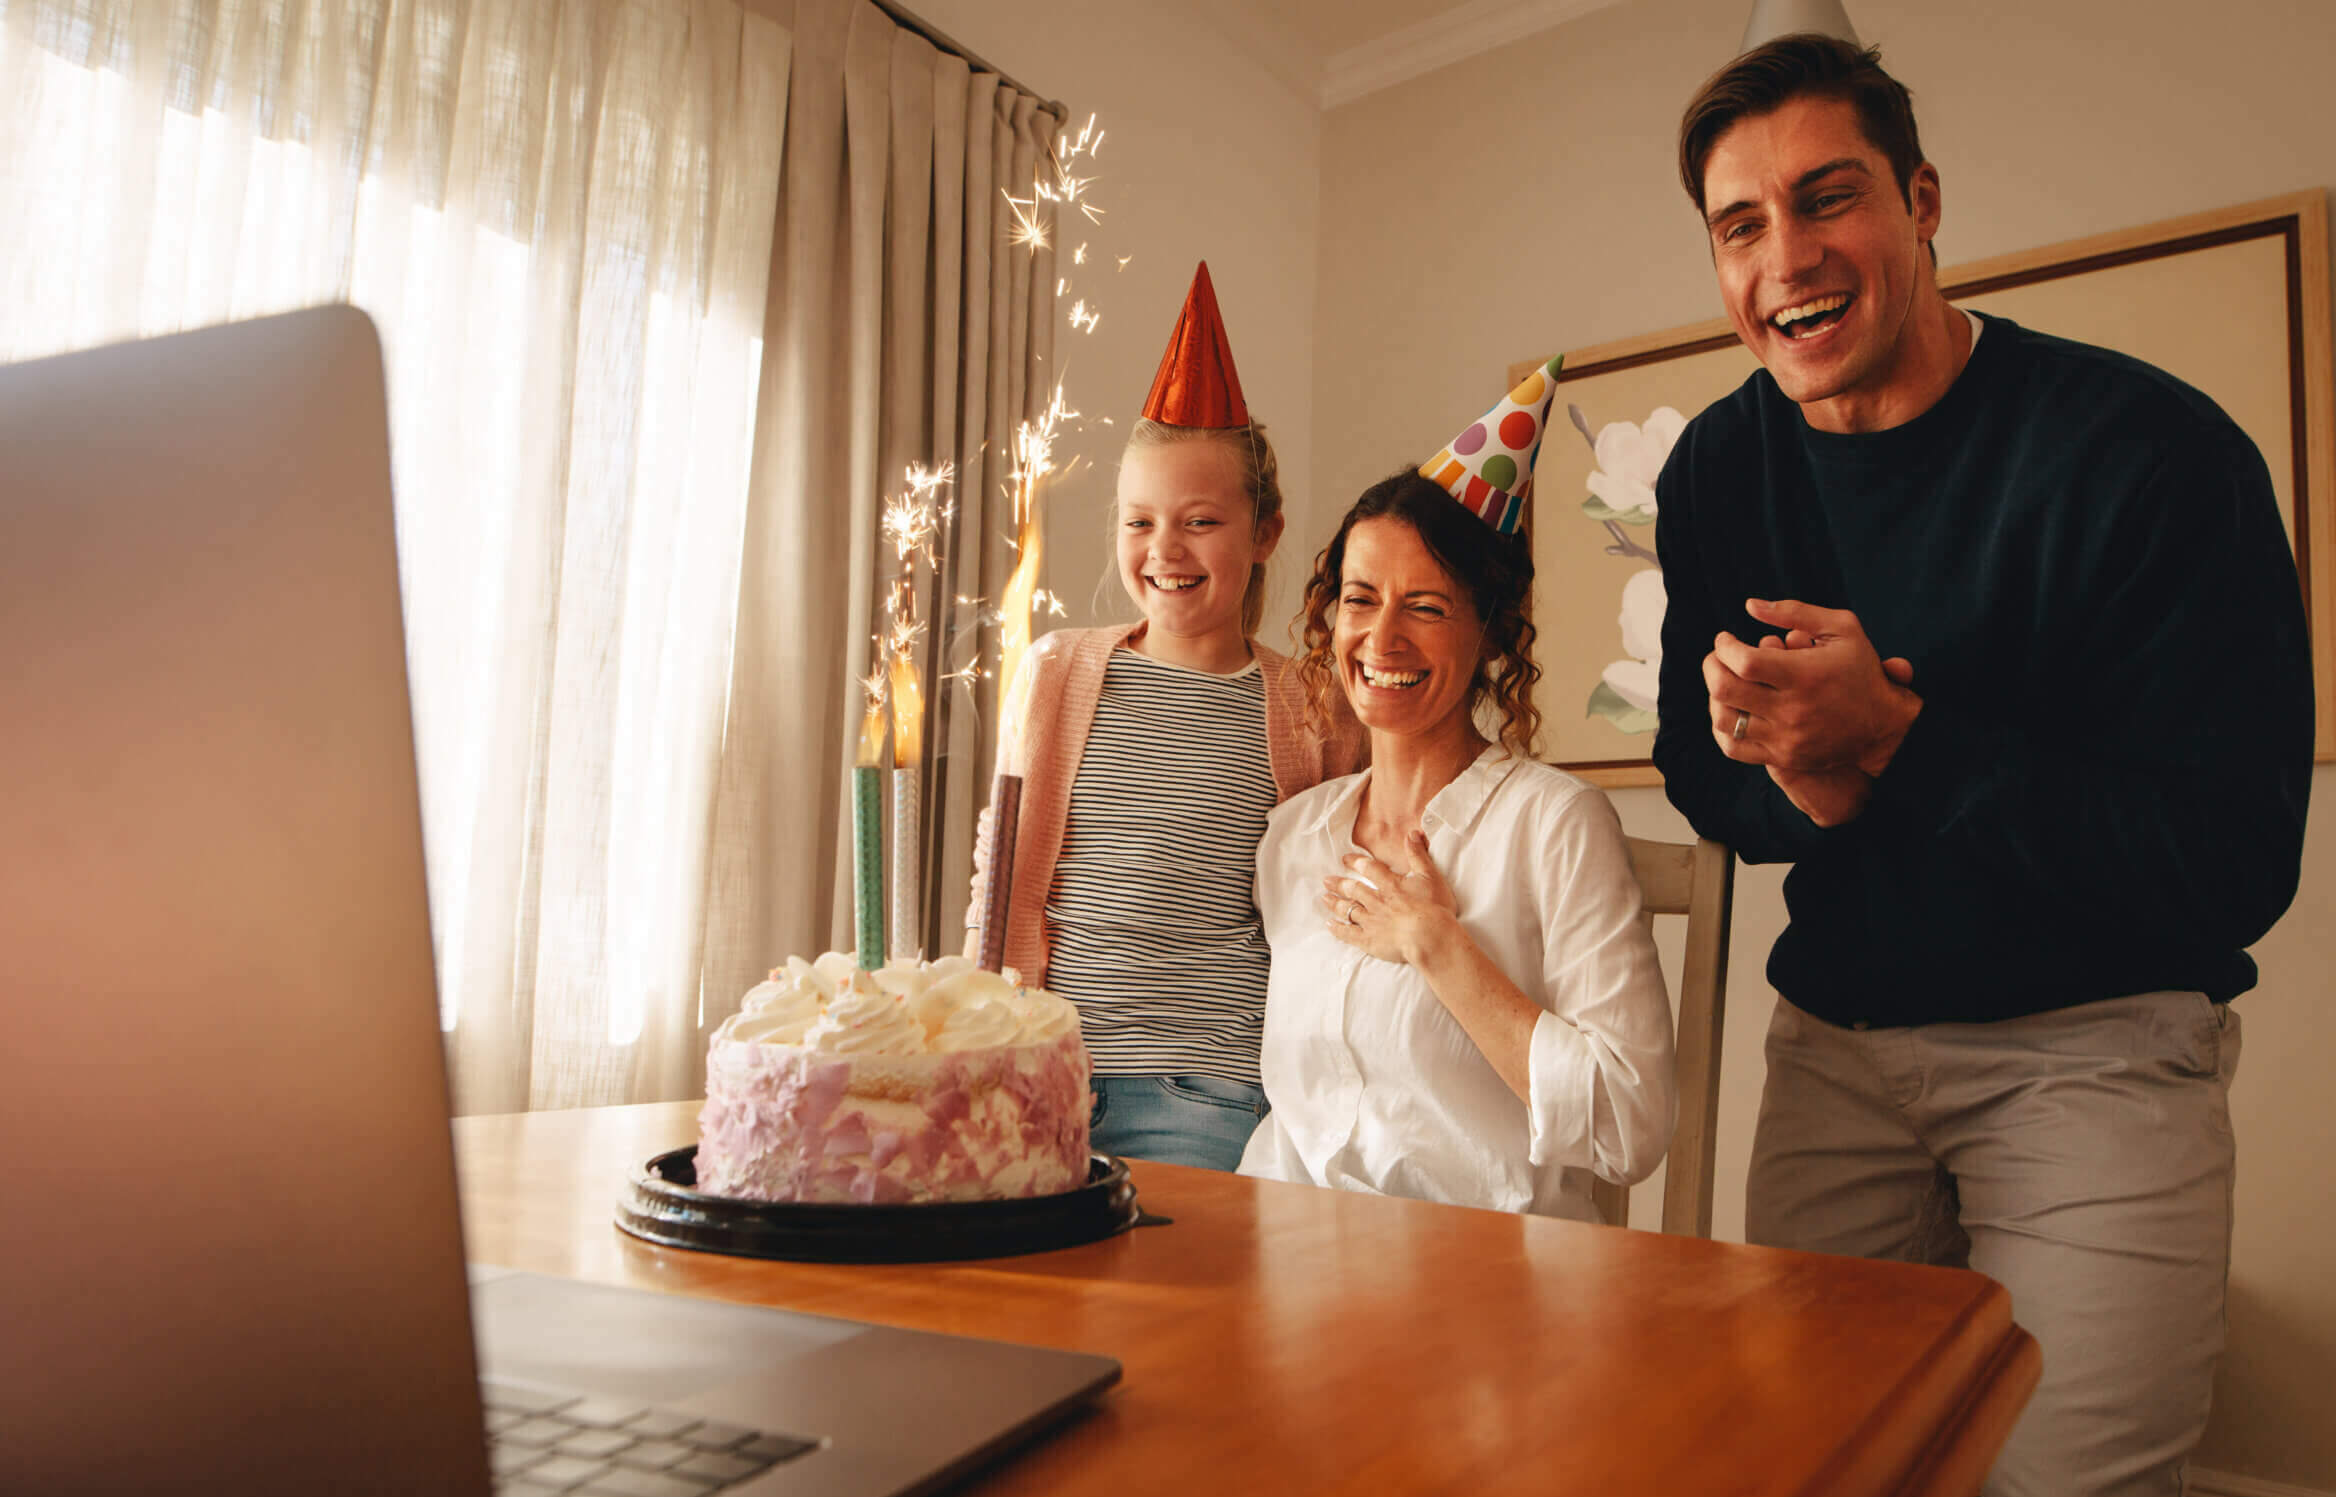 Woman celebrating birthday at home with family and friends on video call. Laptop and birthday cake with candles on table with family wearing party hats smiling at home.